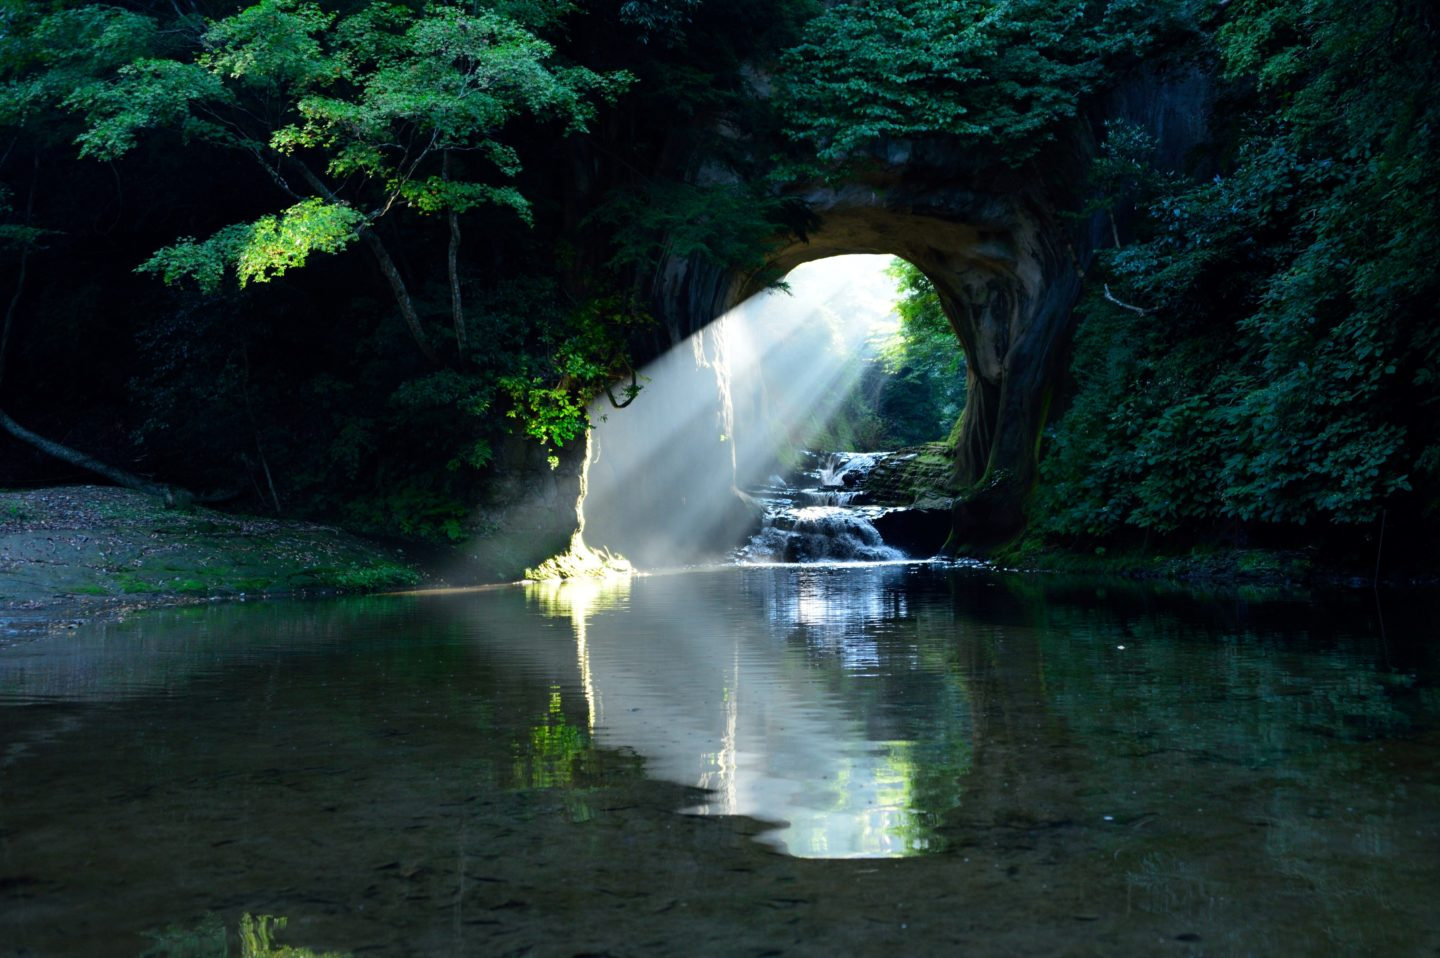 Kameiwa Cave (known widely as Nomizo Falls)